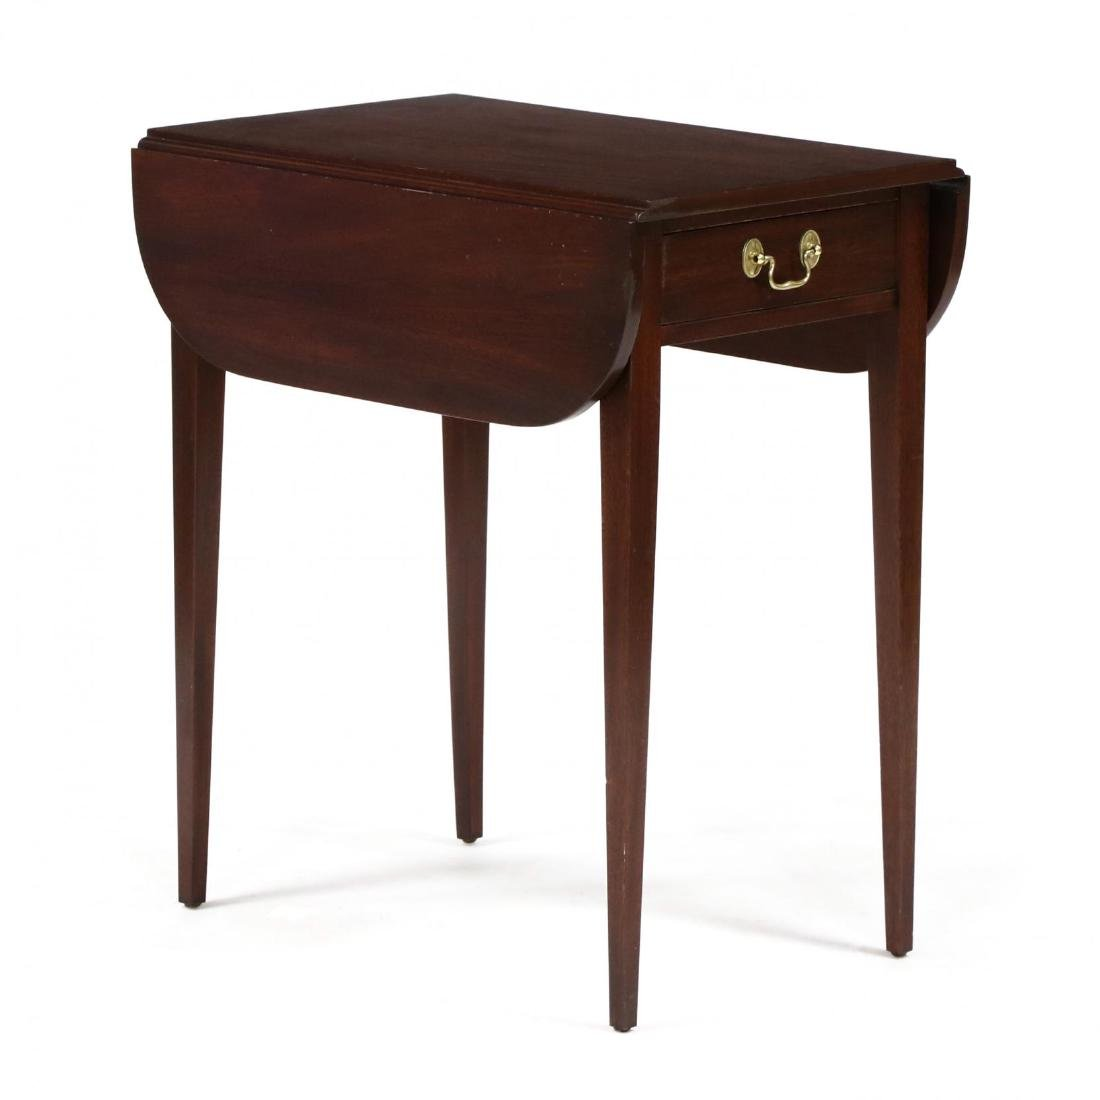 Henkel Harris, Mahogany Pembroke Table